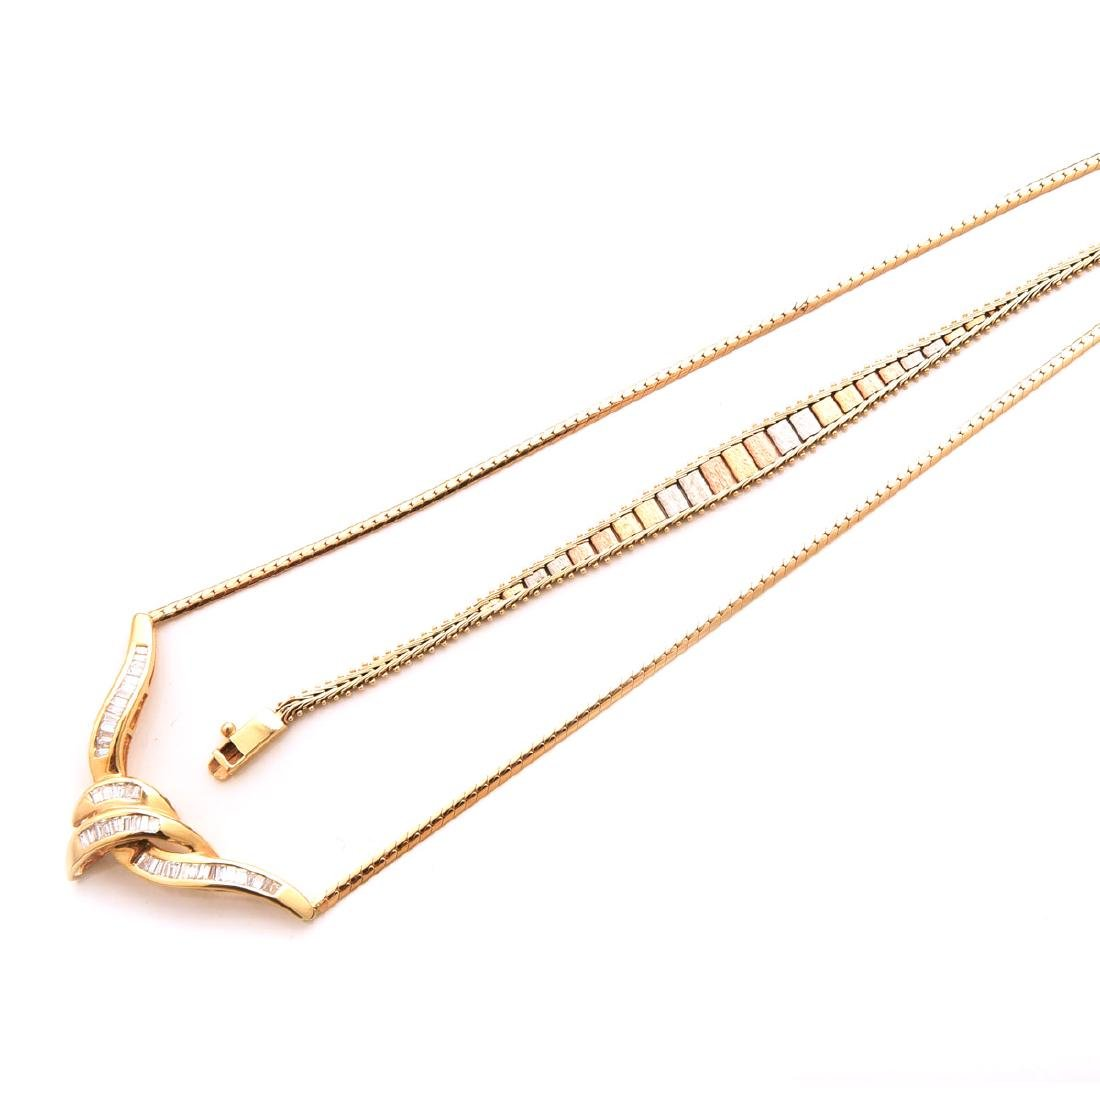 Collection of Diamond, 14k Gold Necklace and Bracelet.